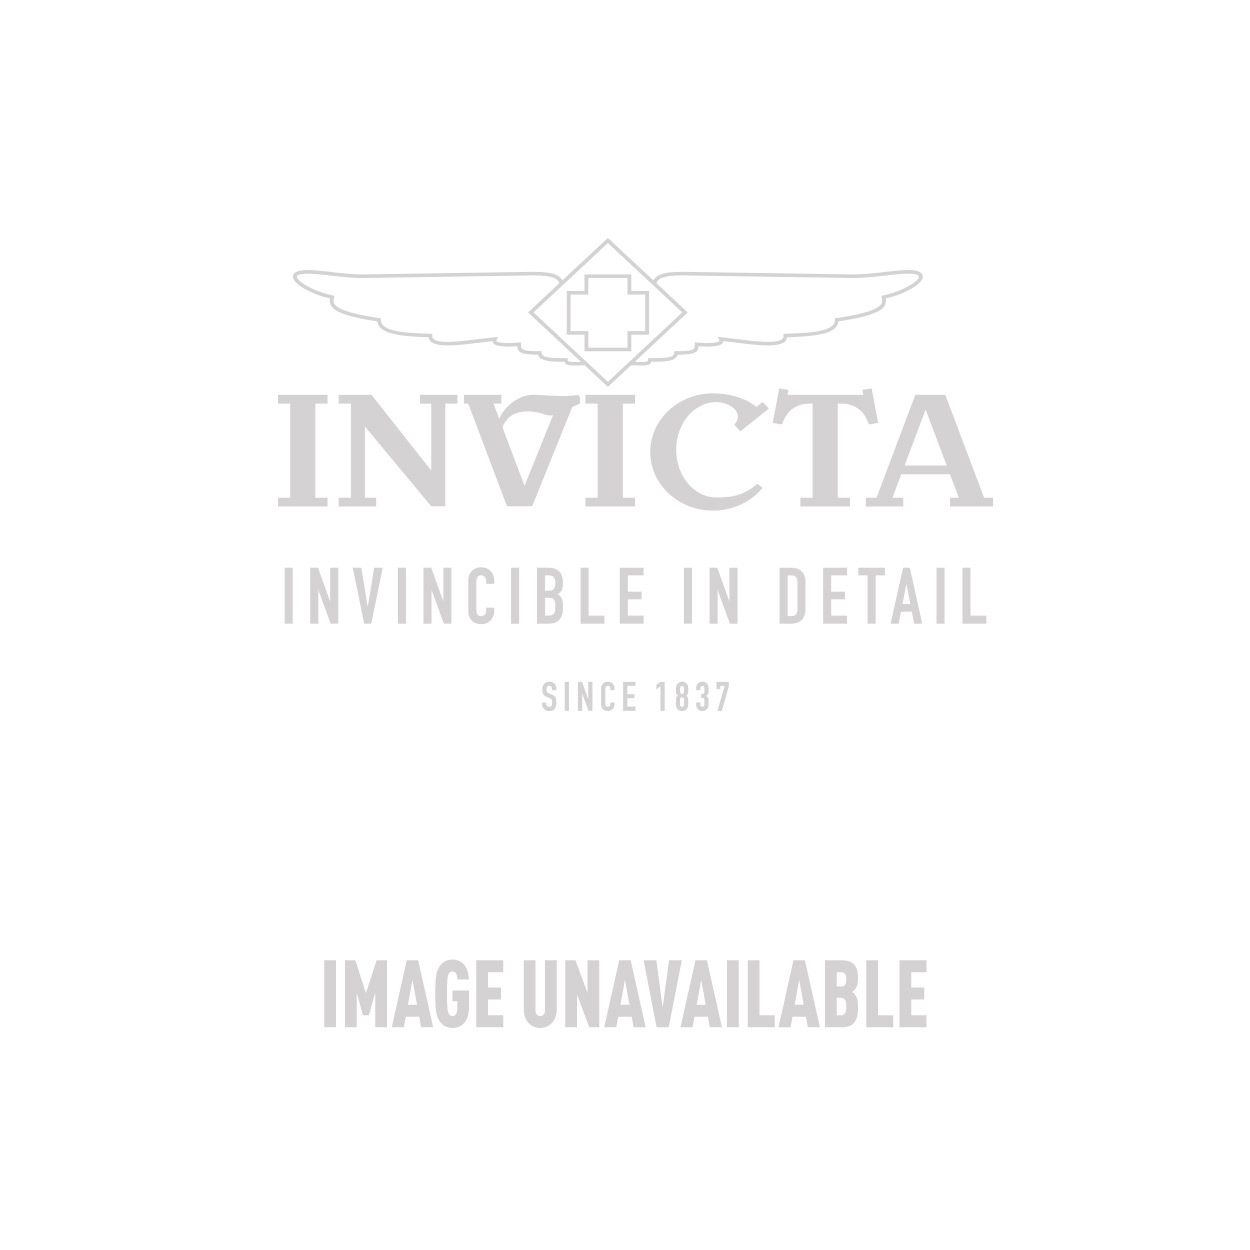 Invicta Specialty Swiss Movement Quartz Watch - Rose Gold, Stainless Steel case with Steel, Rose Gold tone Stainless Steel band - Model 13617